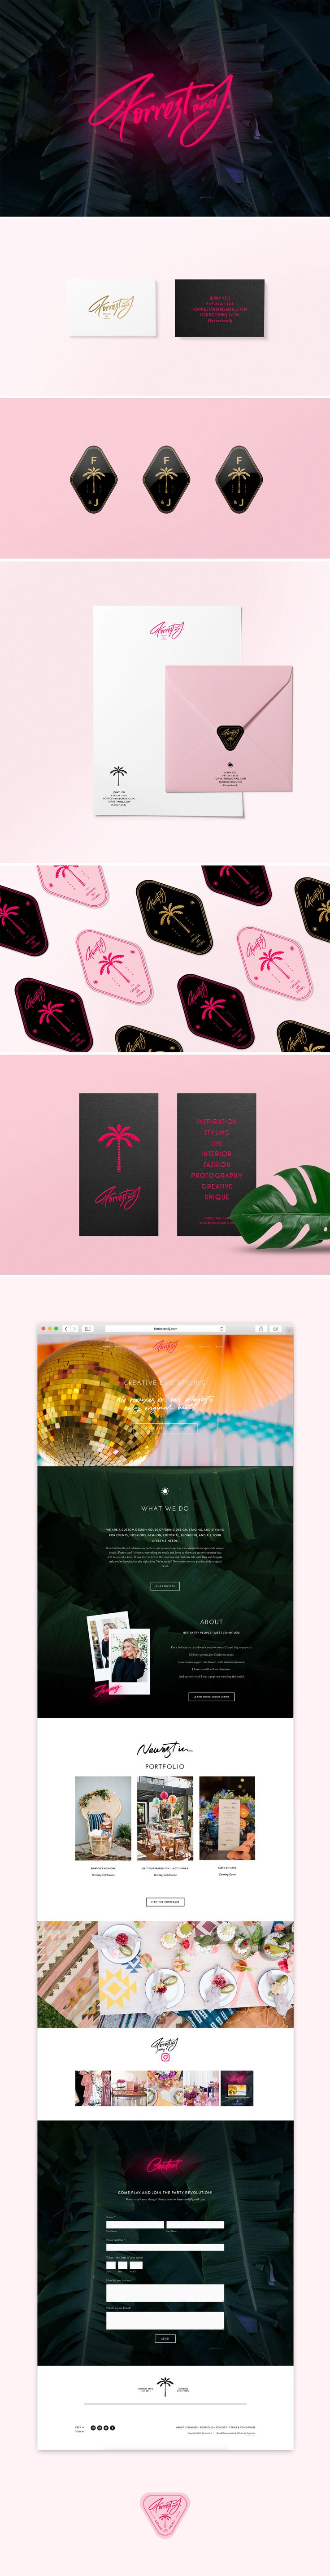 Brand Identity and Collateral Design for a Stylist / Forrest and J. by Cocorrina